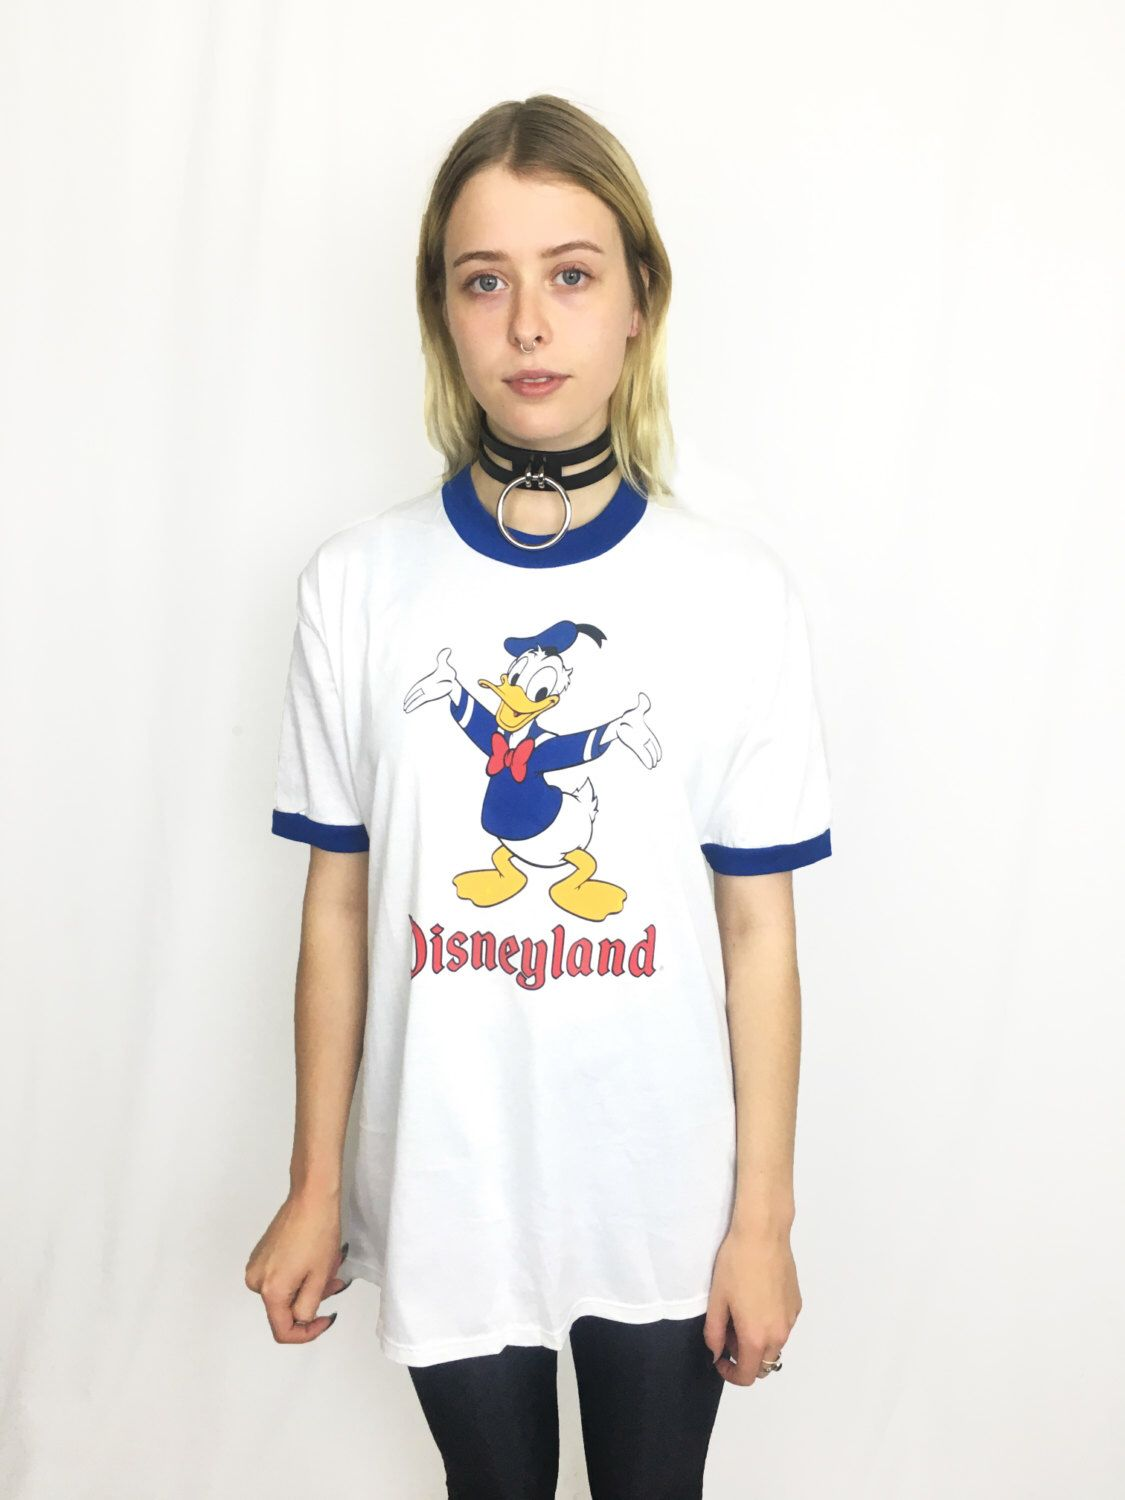 Vintage Disneyland Ringer Tee Size Large by SurvivalResearchLabs on Etsy https://www.etsy.com/listing/481482425/vintage-disneyland-ringer-tee-size-large